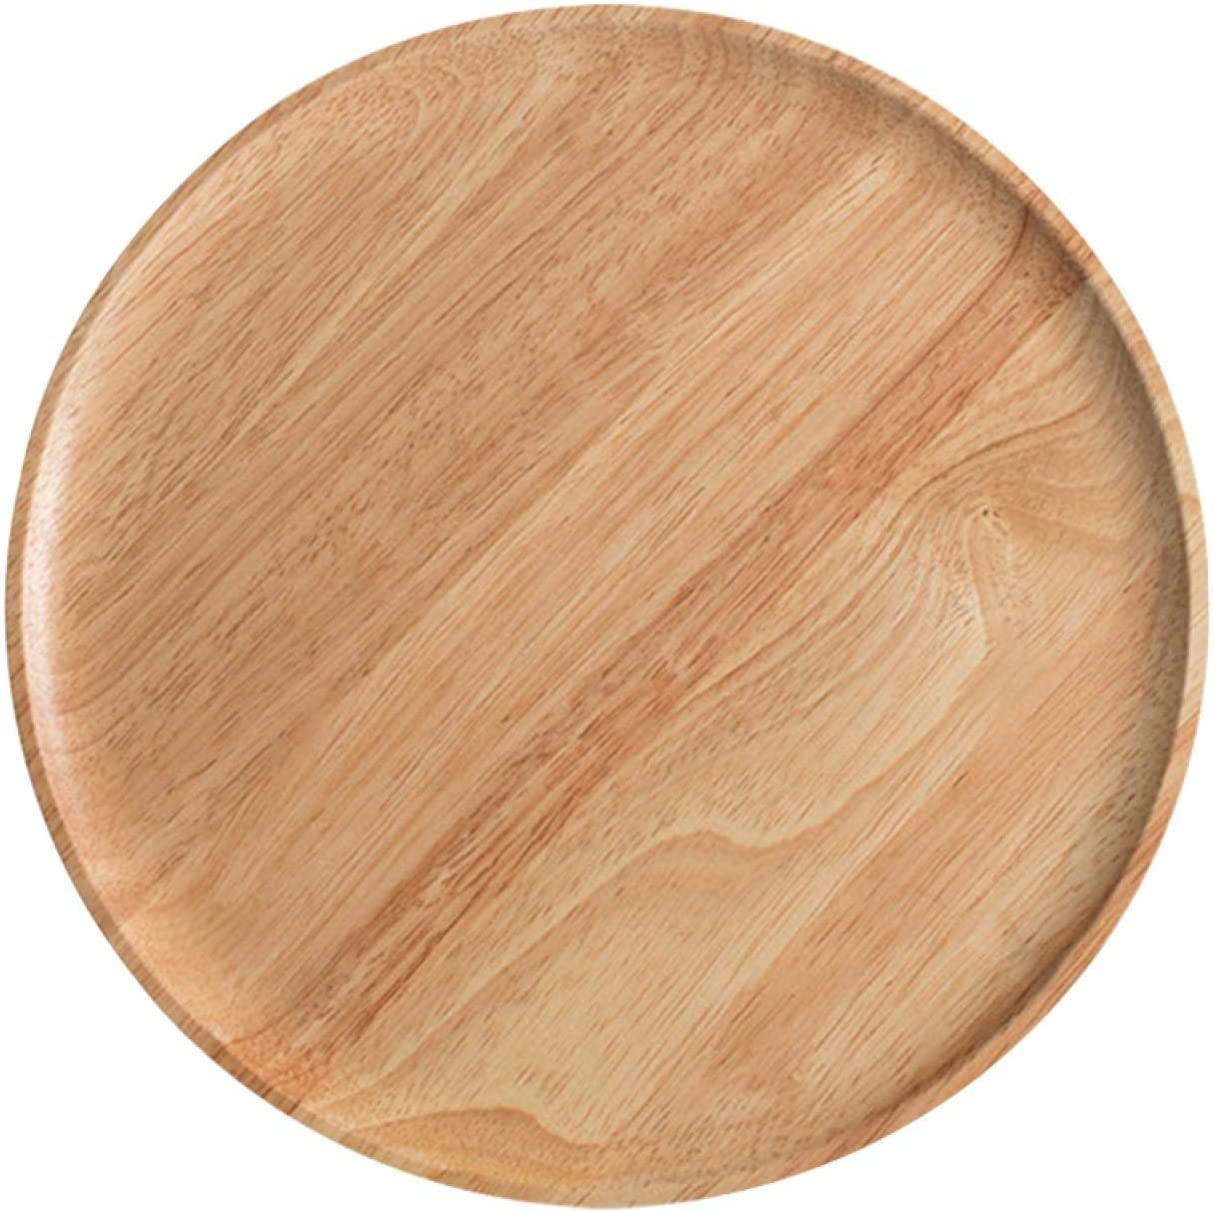 Tray, Wooden Serving Pan Trays Dishes Round Wood Platter Decor for Coffee Tea Cocktail Bread Breakfast Dinner Fruit Food Supplies for Home Resturant Cafe Party Prom